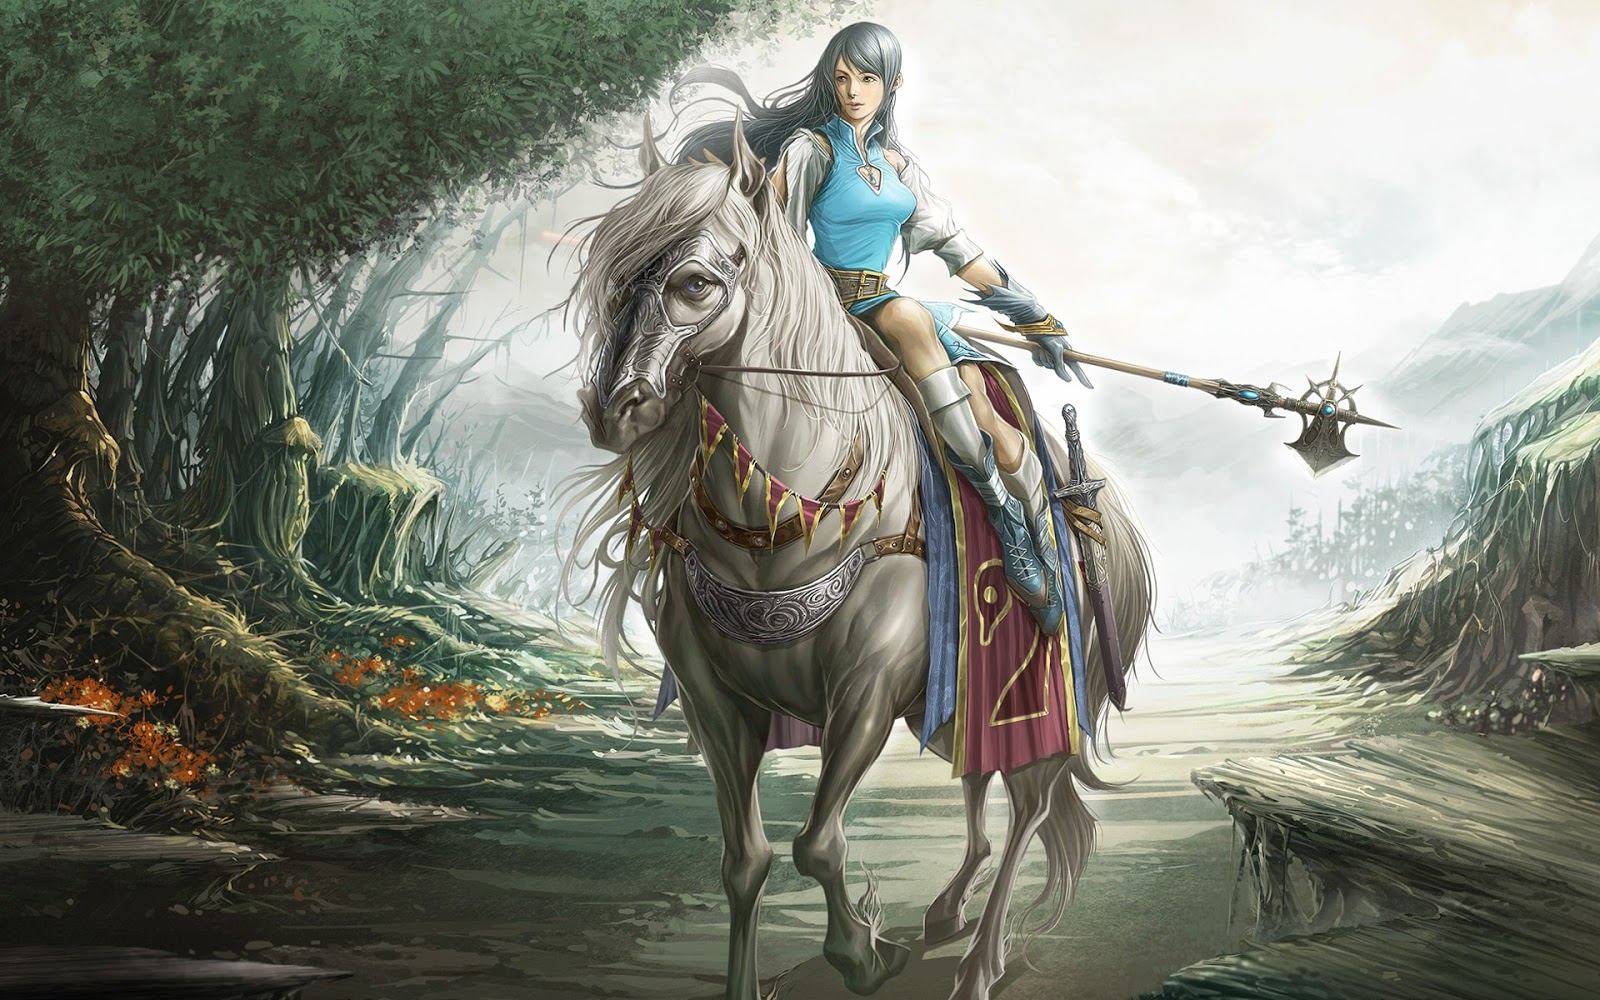 Amazing   Wallpaper Horse Magic - Belligerent+Girl+On+A+Horse  Pictures_228511.jpg